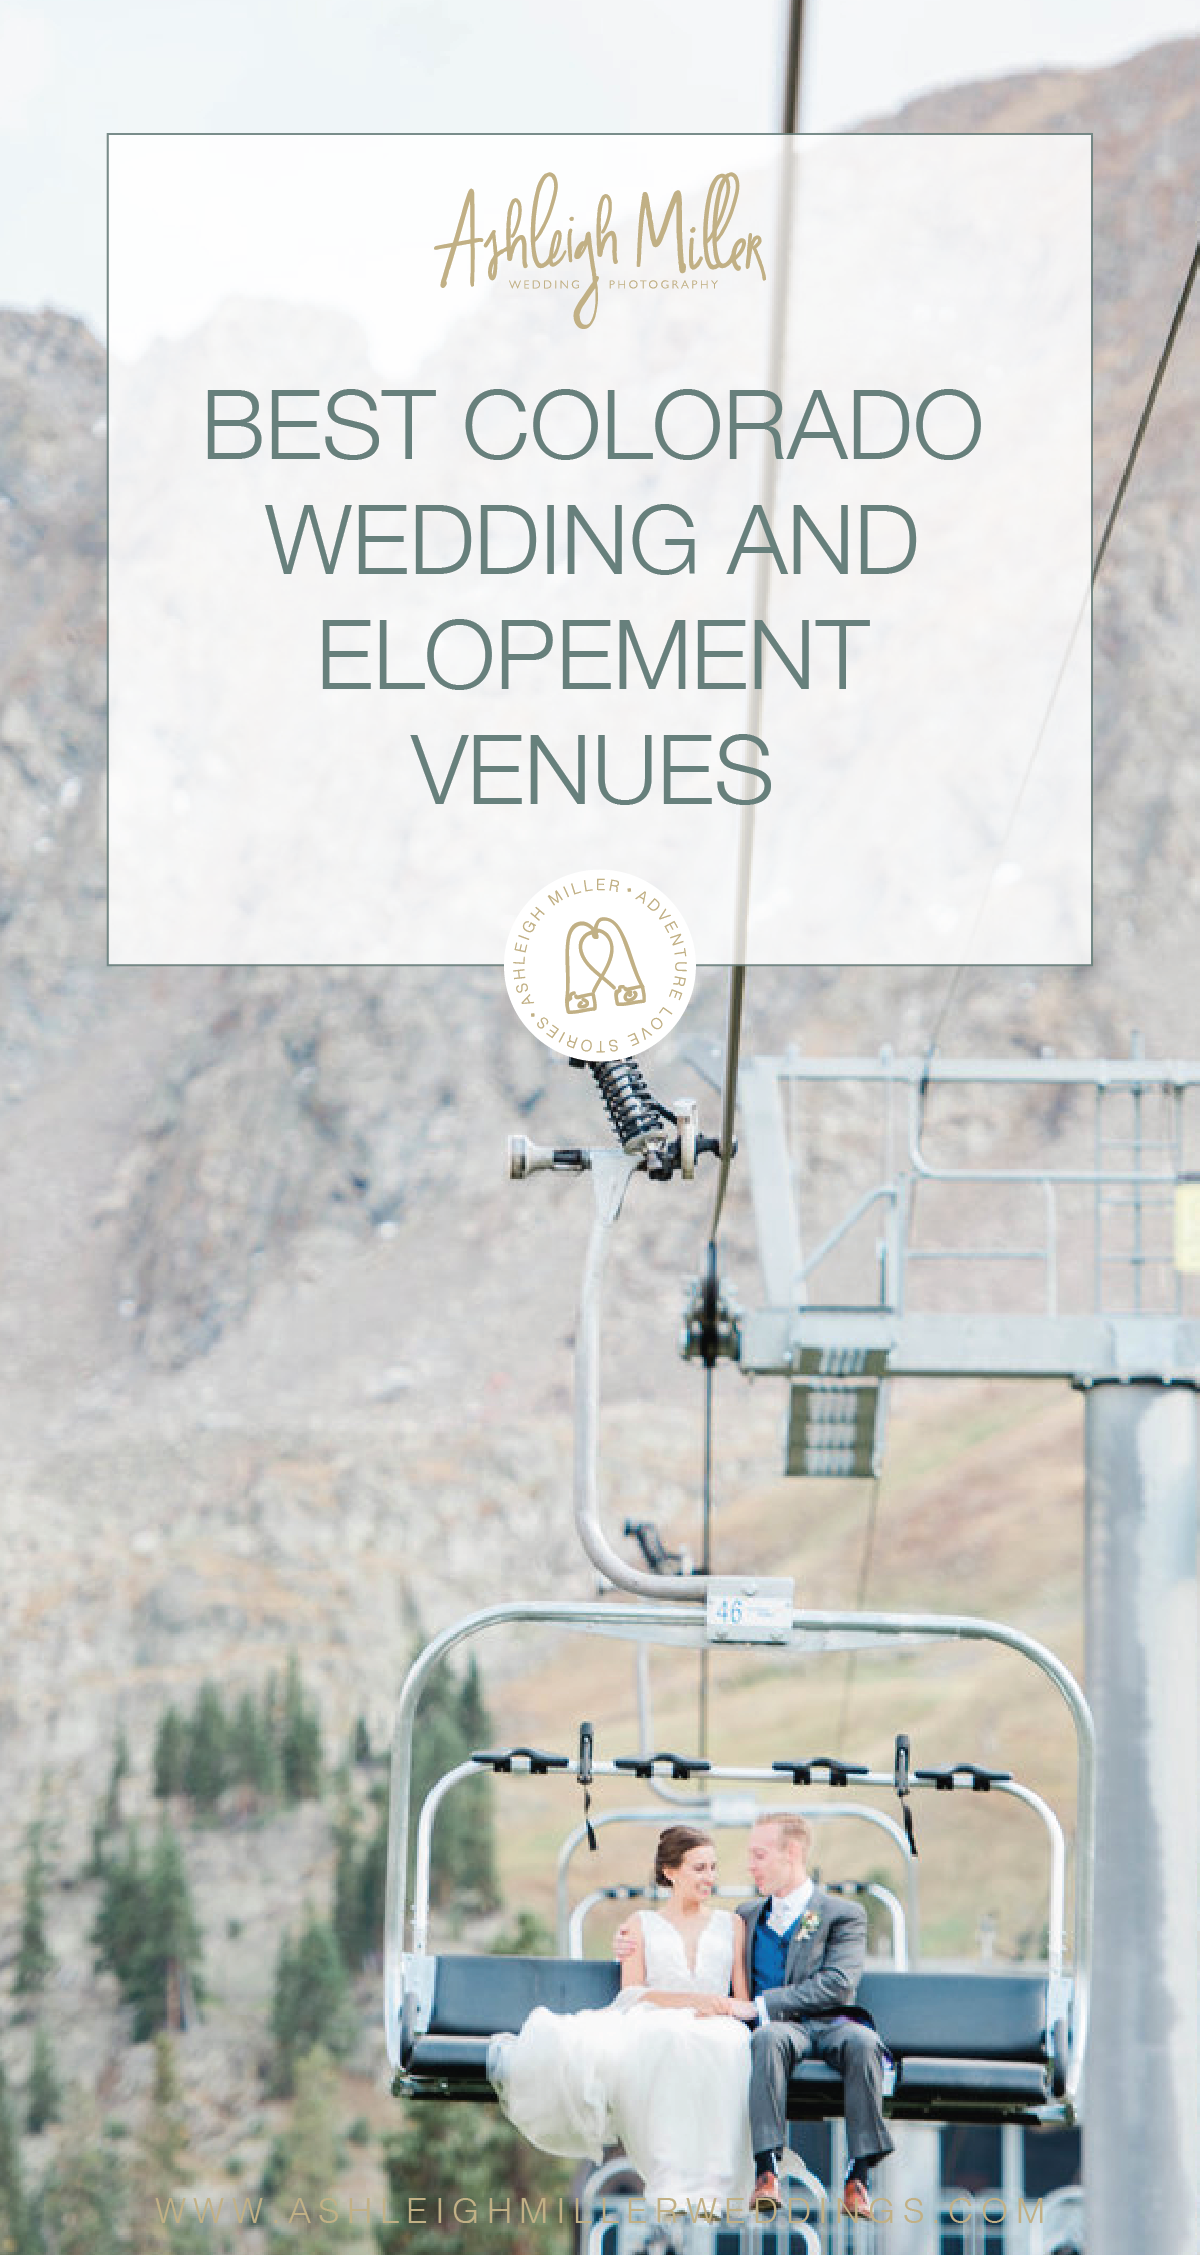 Best-Colorado-Wedding-and-Elopement-Venues-02.png